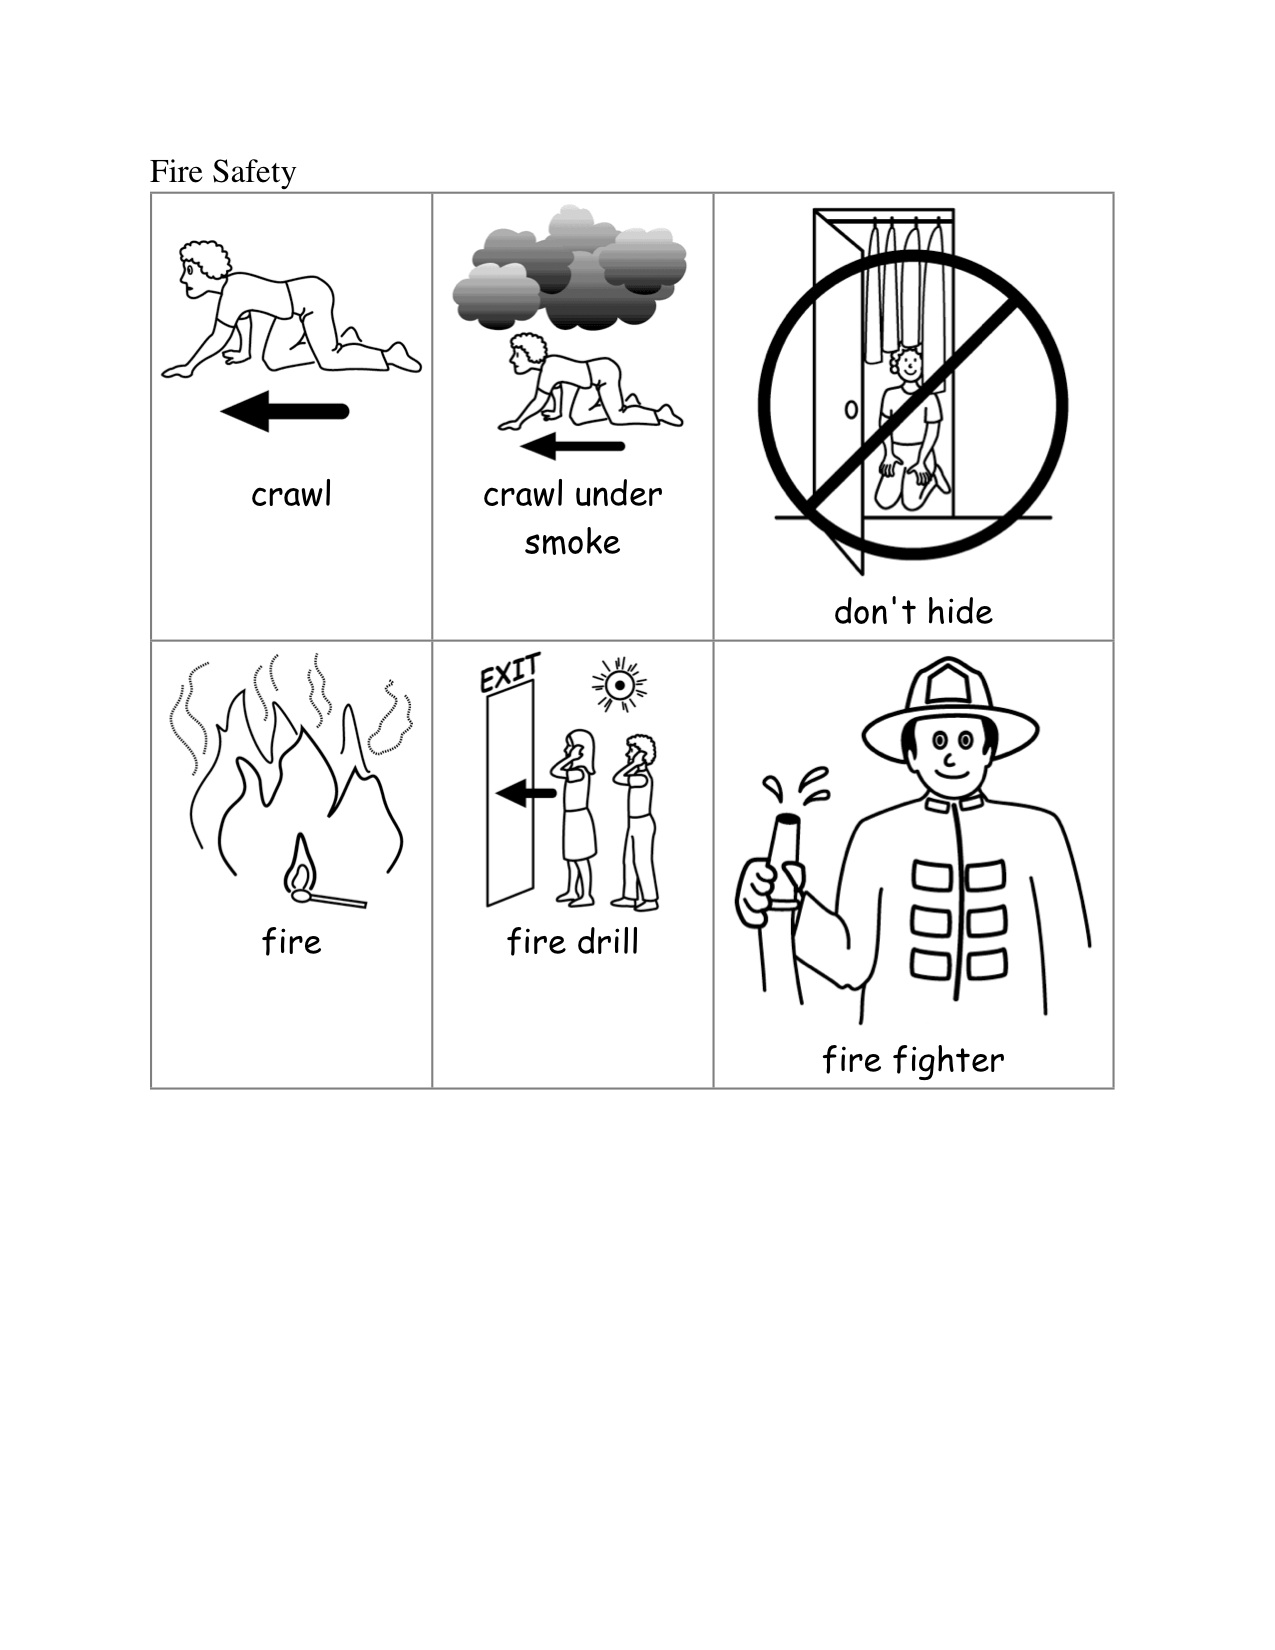 Fire Safety Tips For Kids Worksheet On Skrl